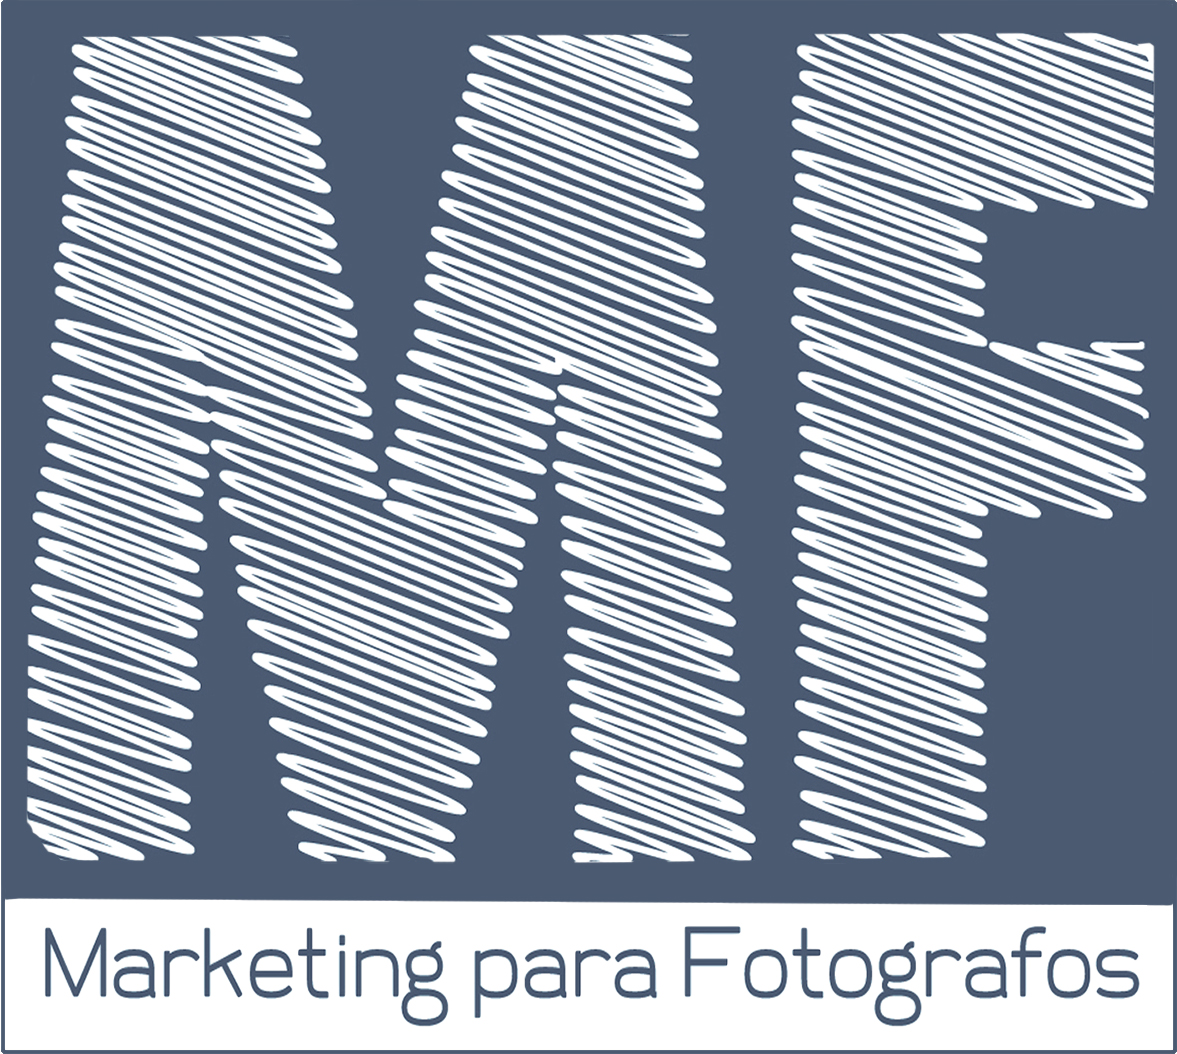 Marketing para Fotógrafos - Vicente Nadal